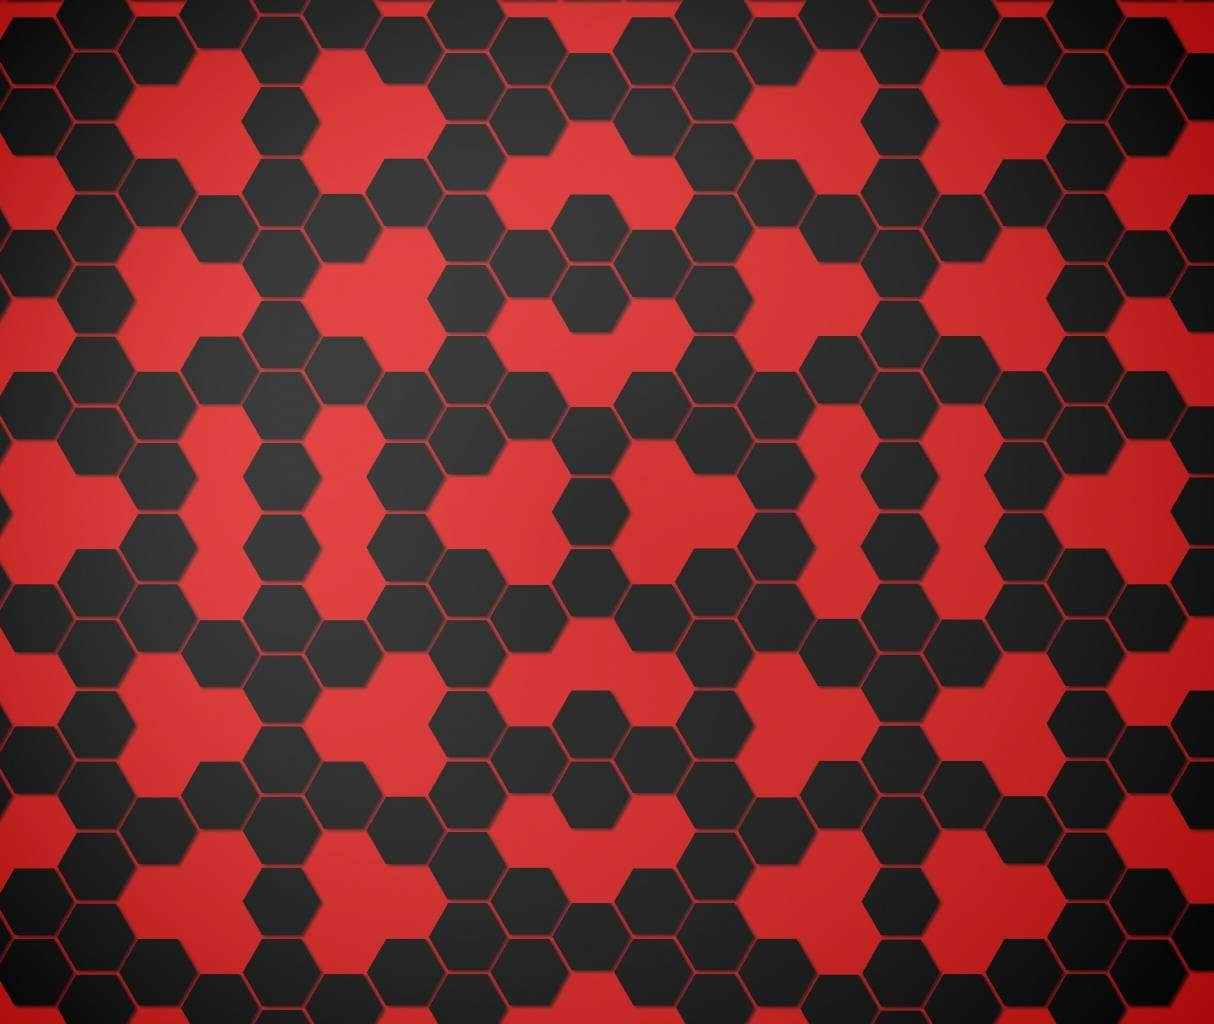 Hexagon Hd